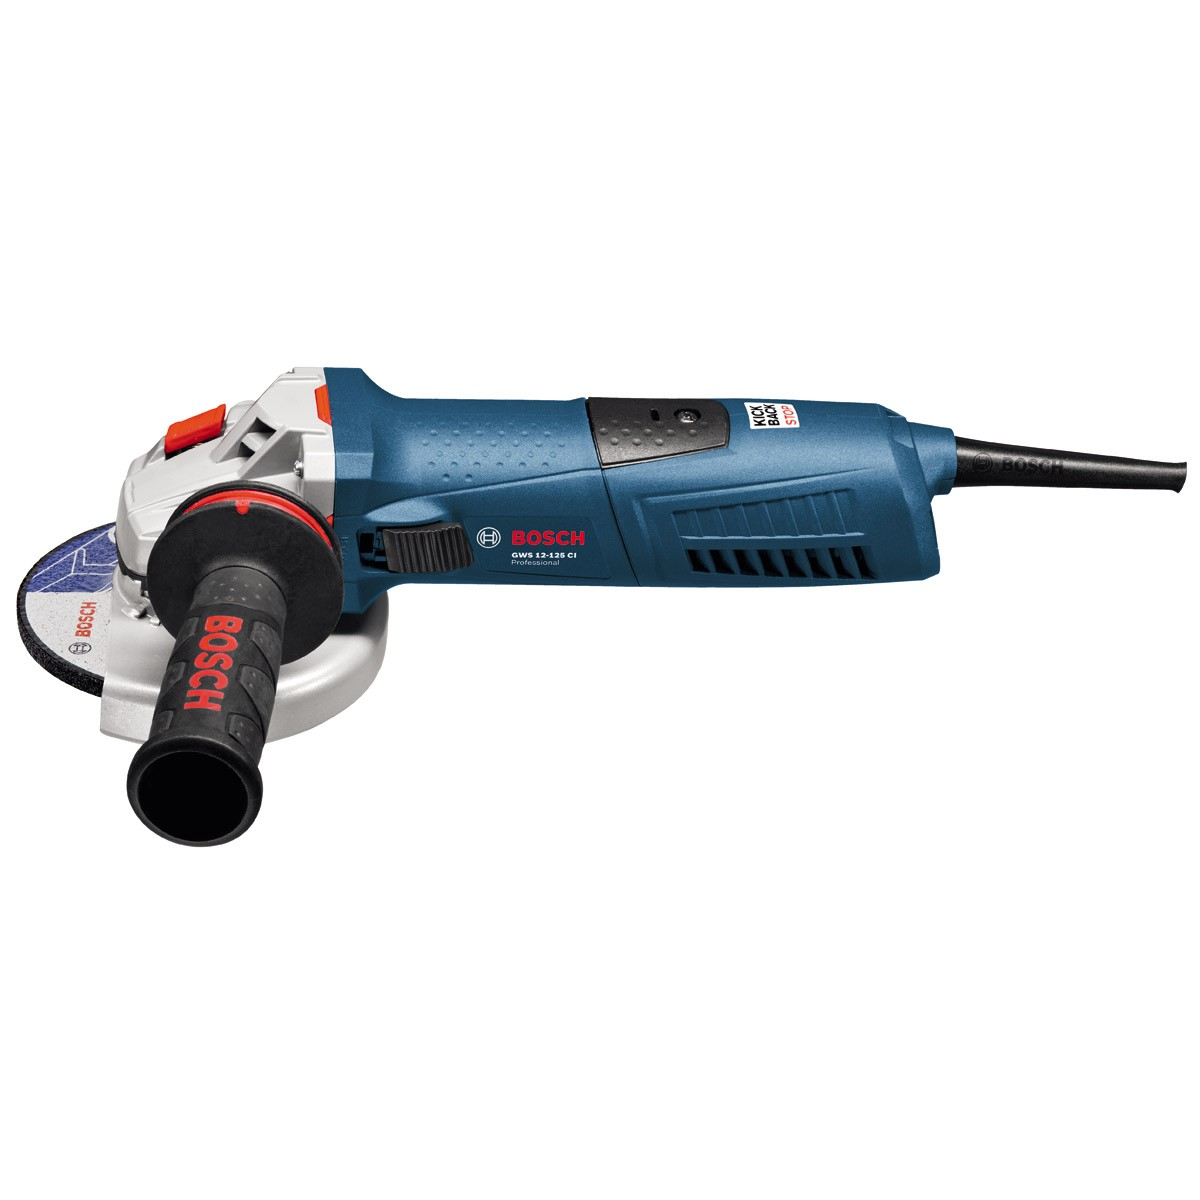 Bosch Gws 12 125 Ci Angle Grinder With Anti Vibration